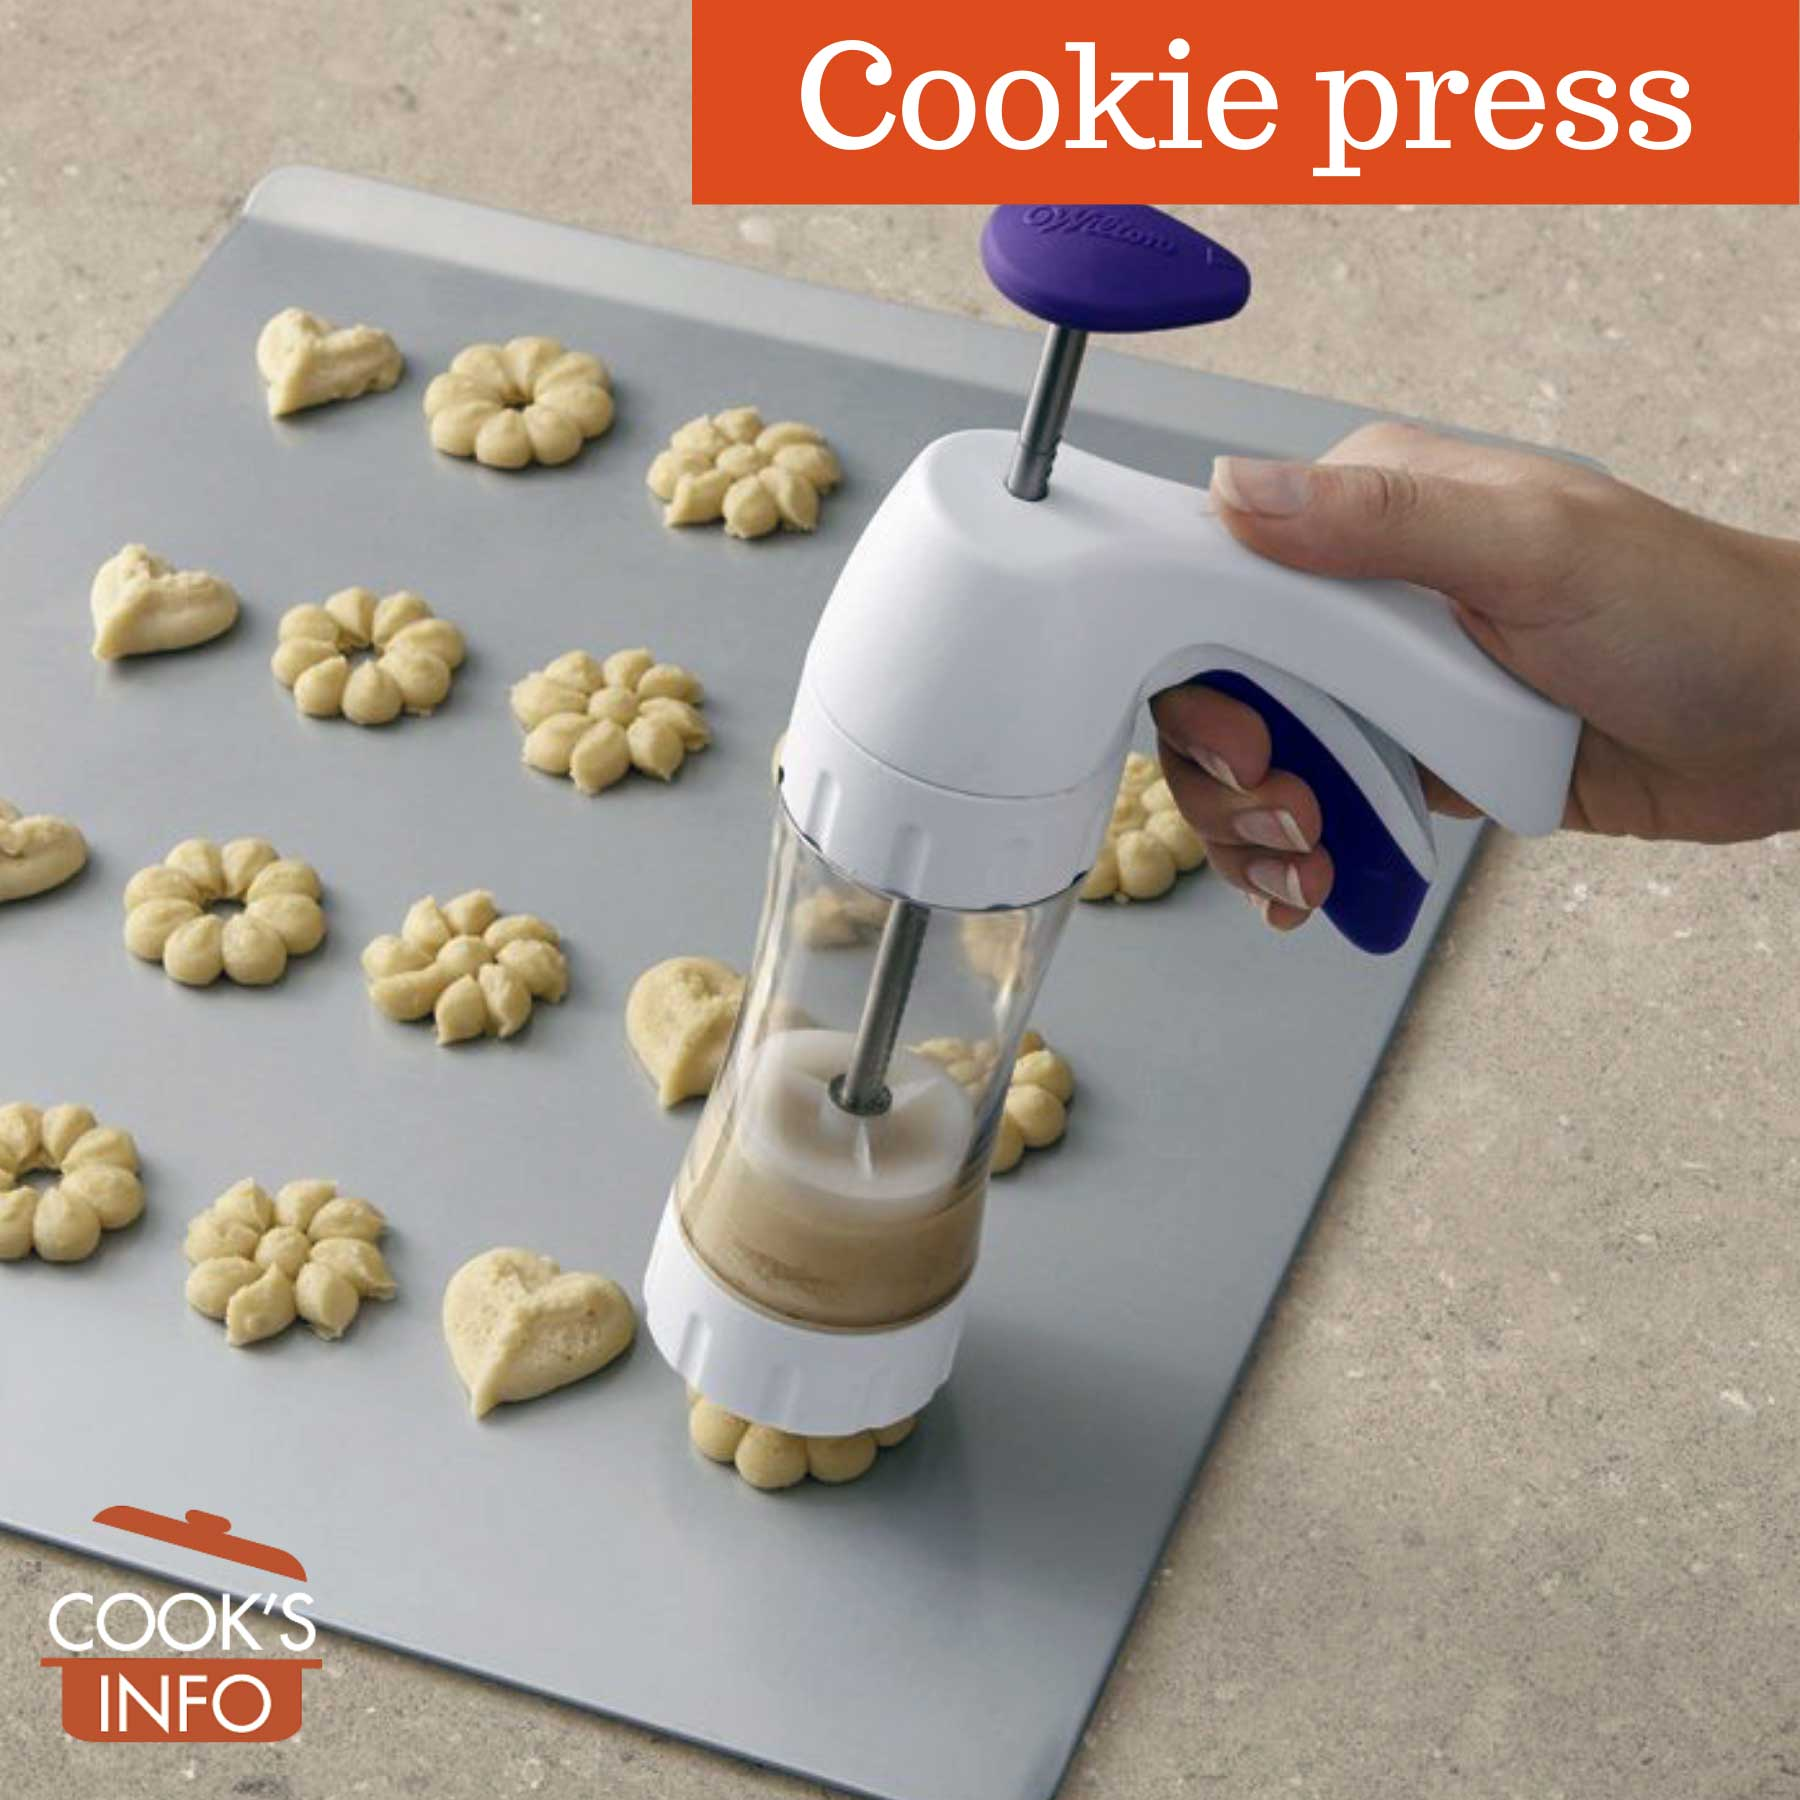 Pistol-style cookie press